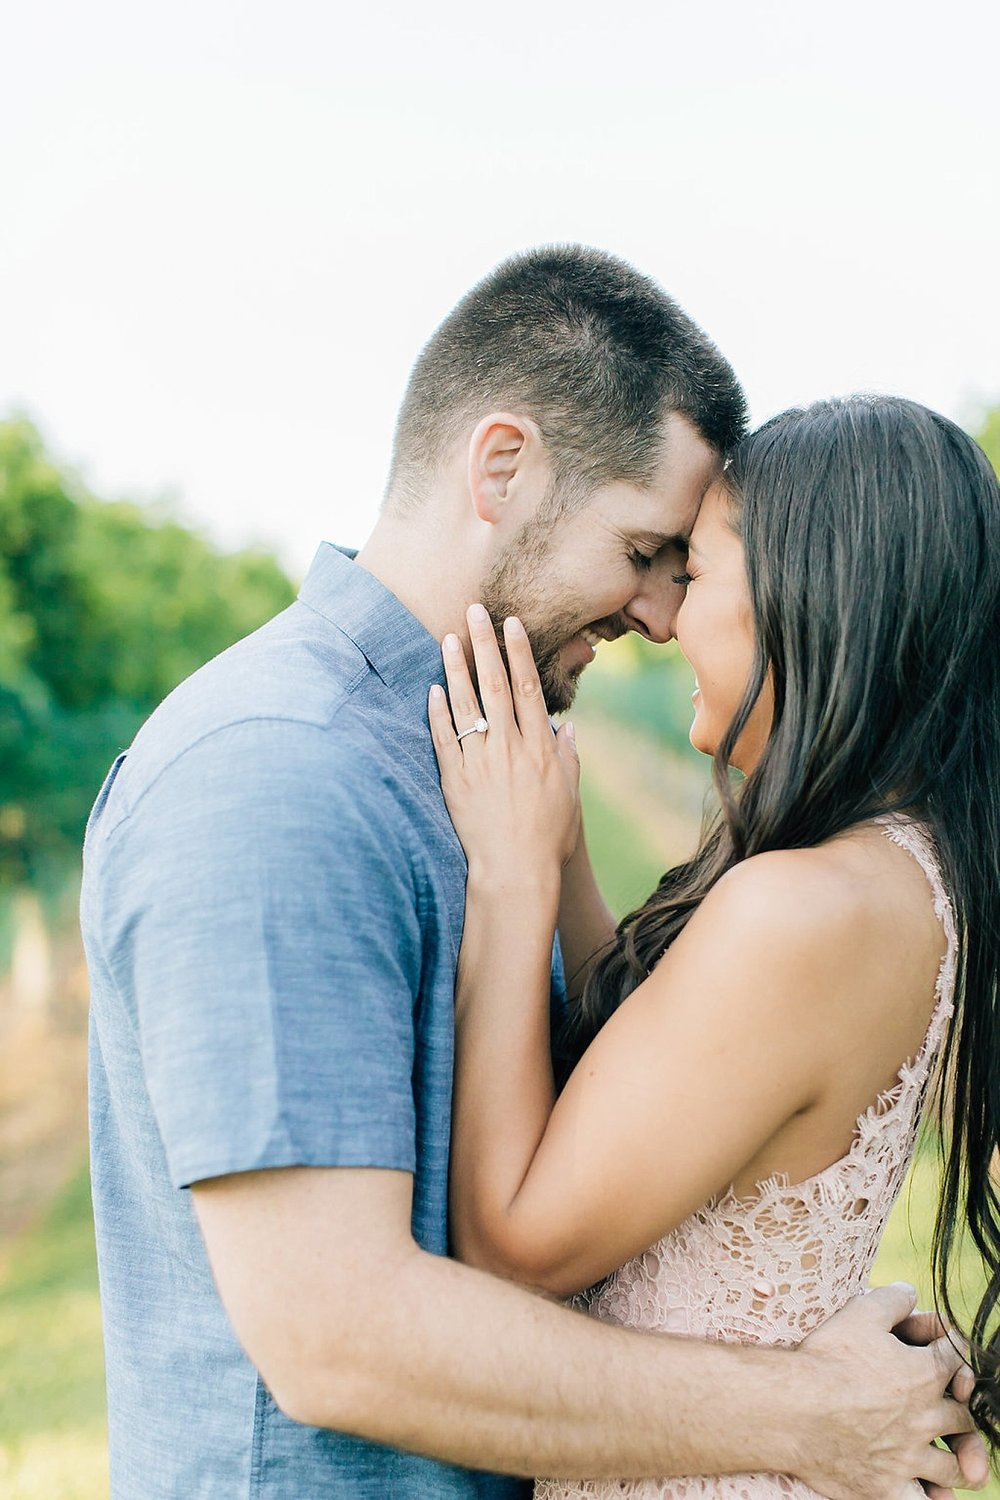 An Airy Summer Engagement Session at Willow Creek Winery in Cape May, NJ by Magdalena Studios_0019.jpg